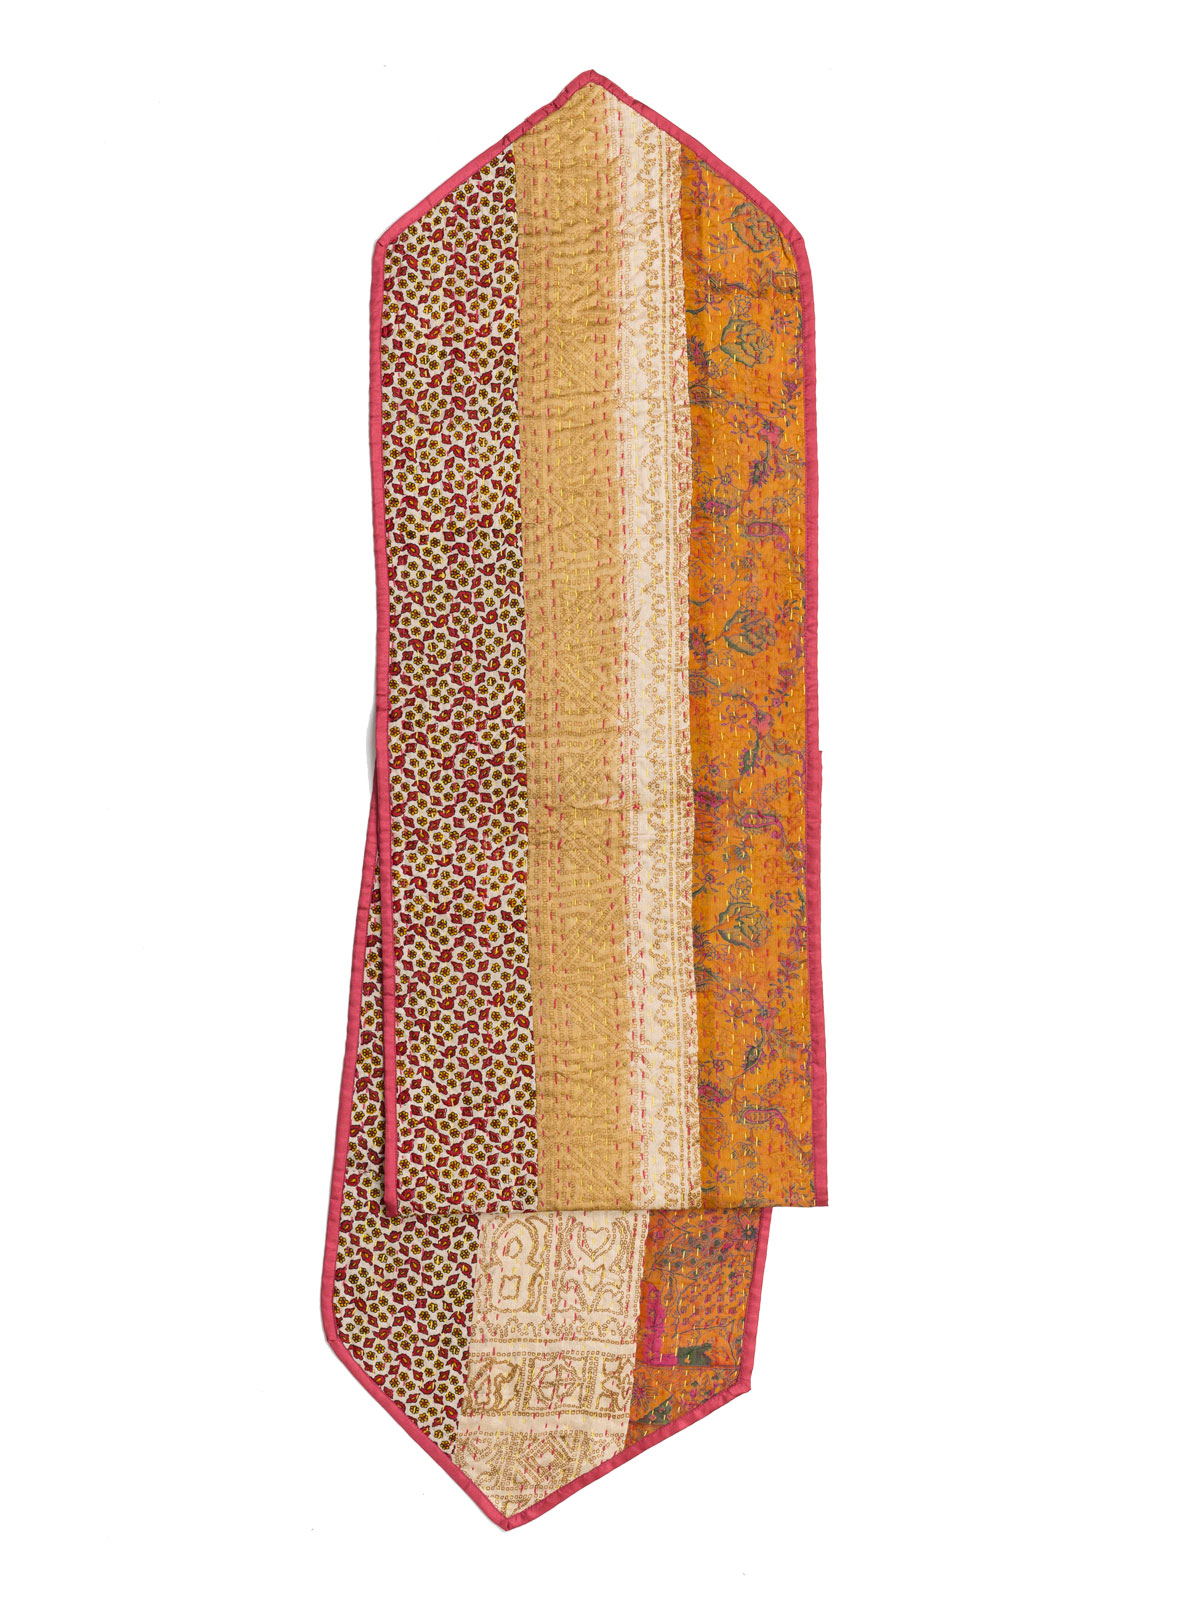 Harvest Kantha Runner